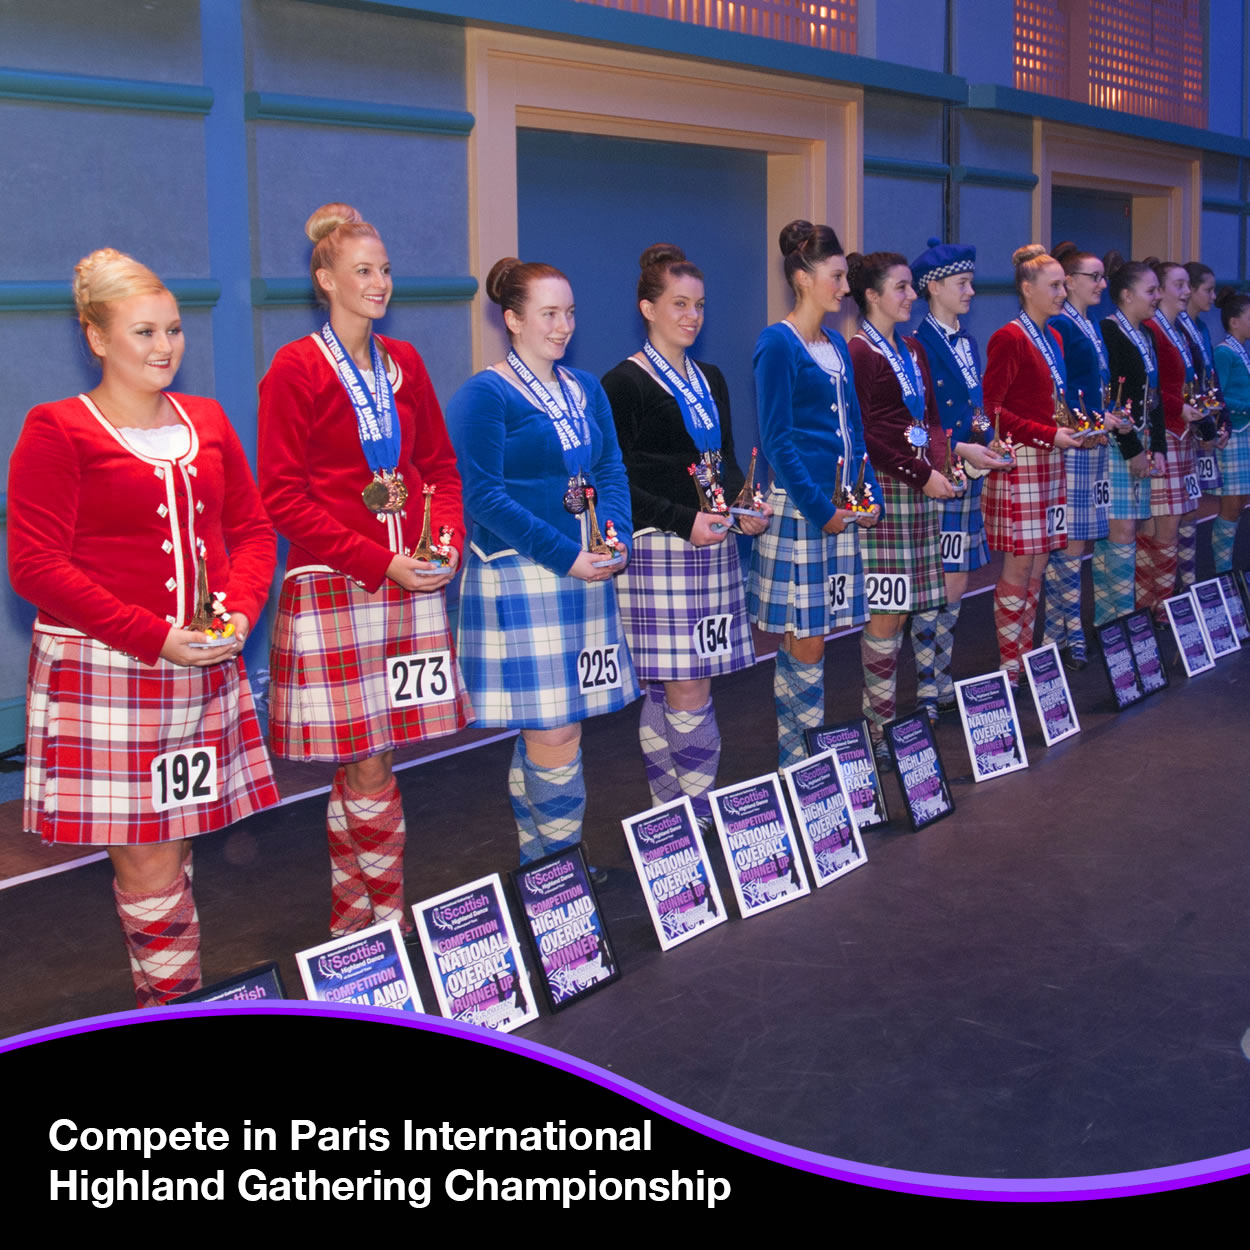 Compete in the Paris International Highland Gathering Championship